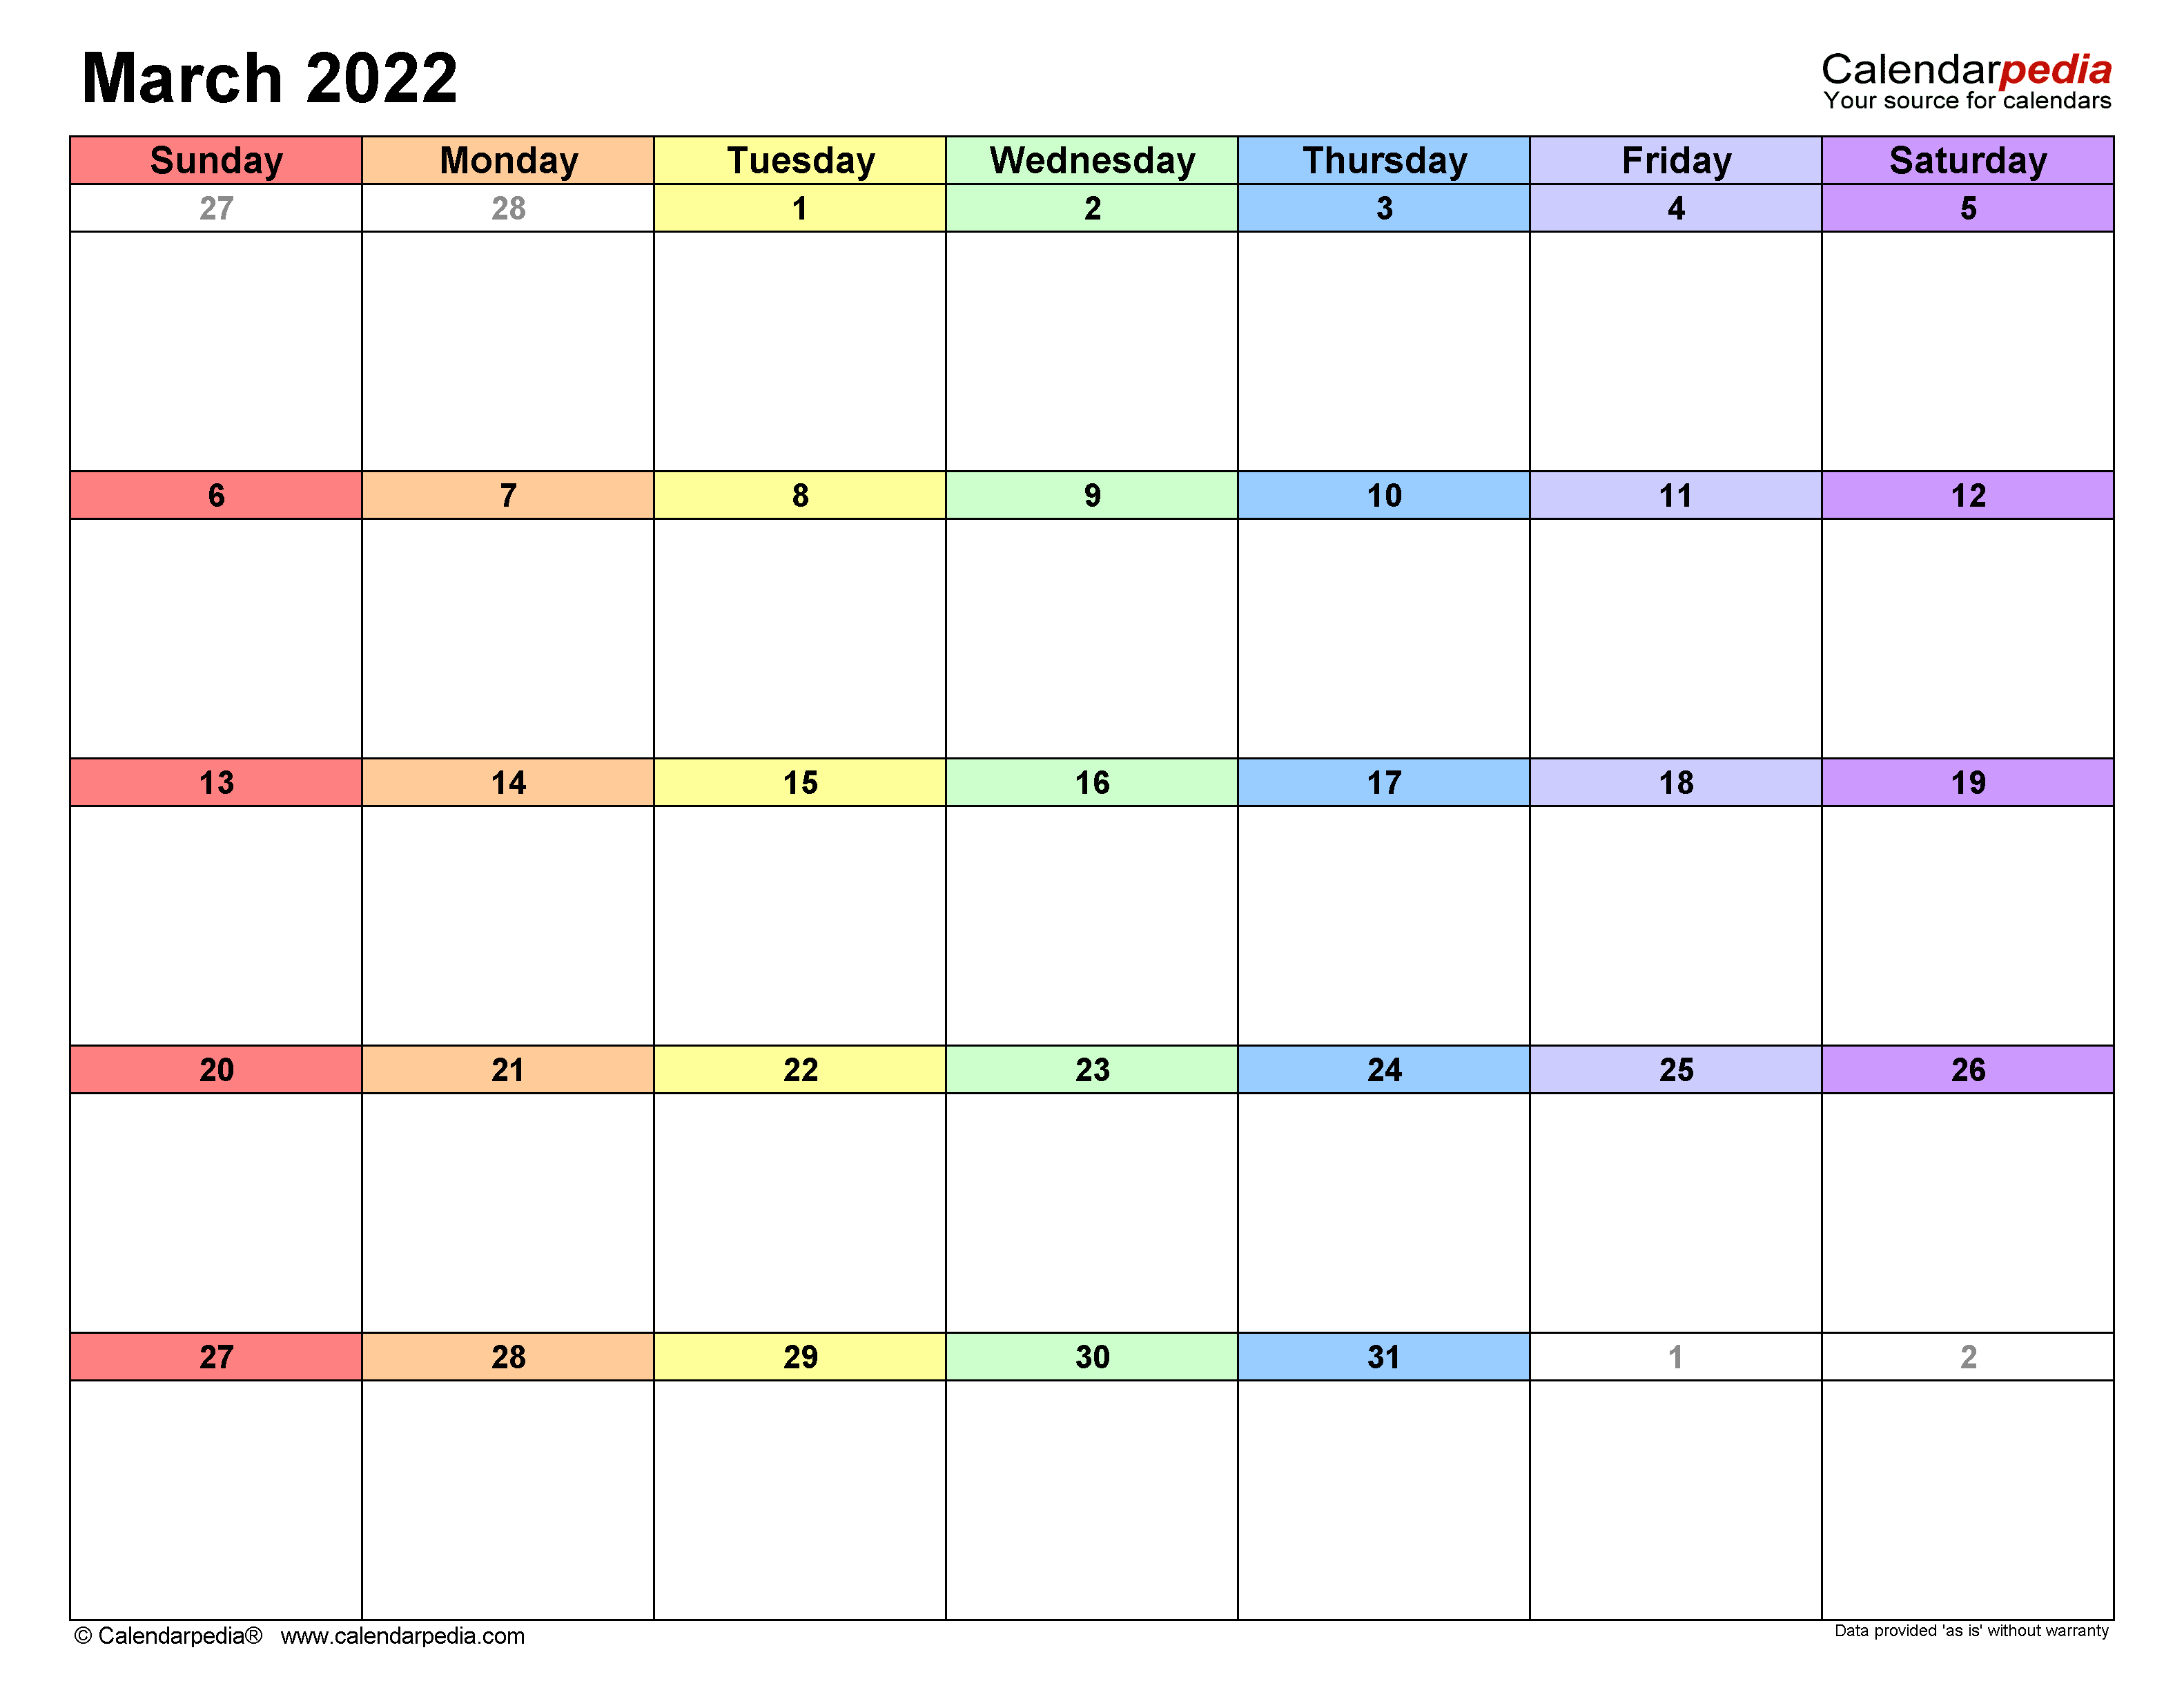 March 2022 Calendar | Templates For Word, Excel And Pdf Regarding Calendar For March 2022